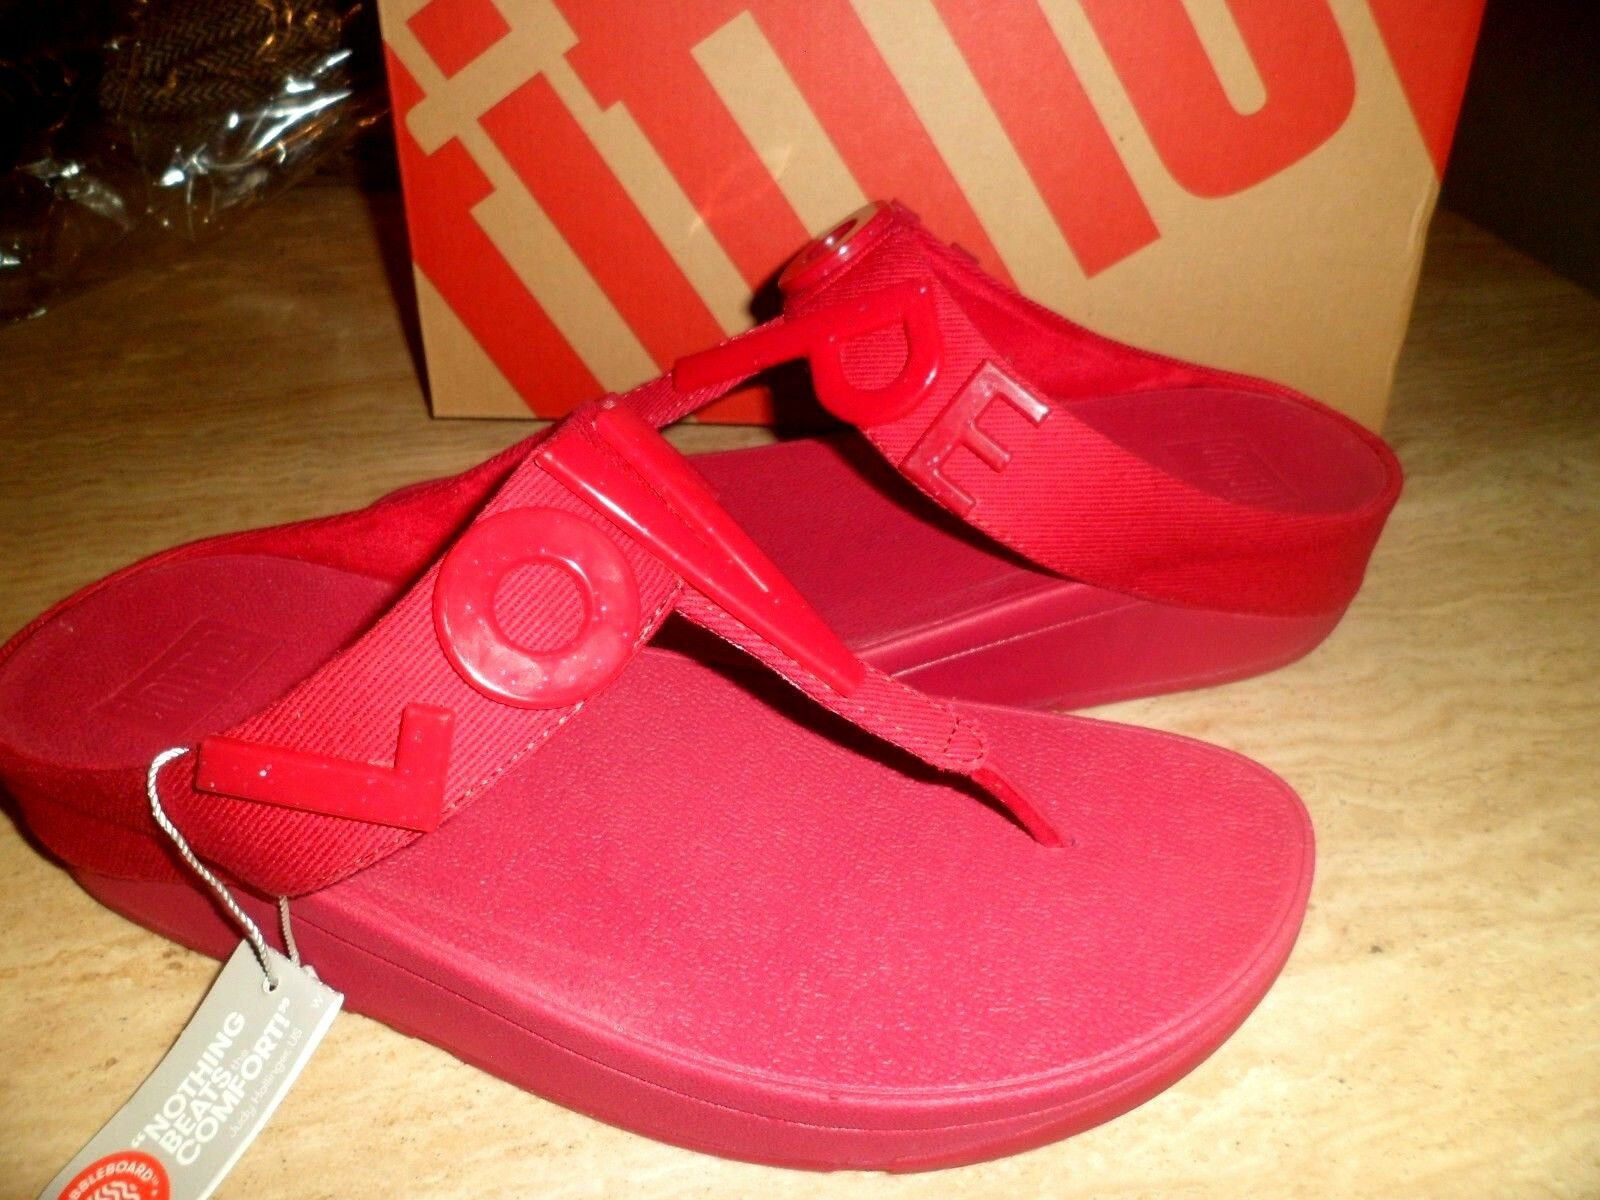 BNWT FitFlop Love & Hope Raspberry Sandales UK 6 EU 39